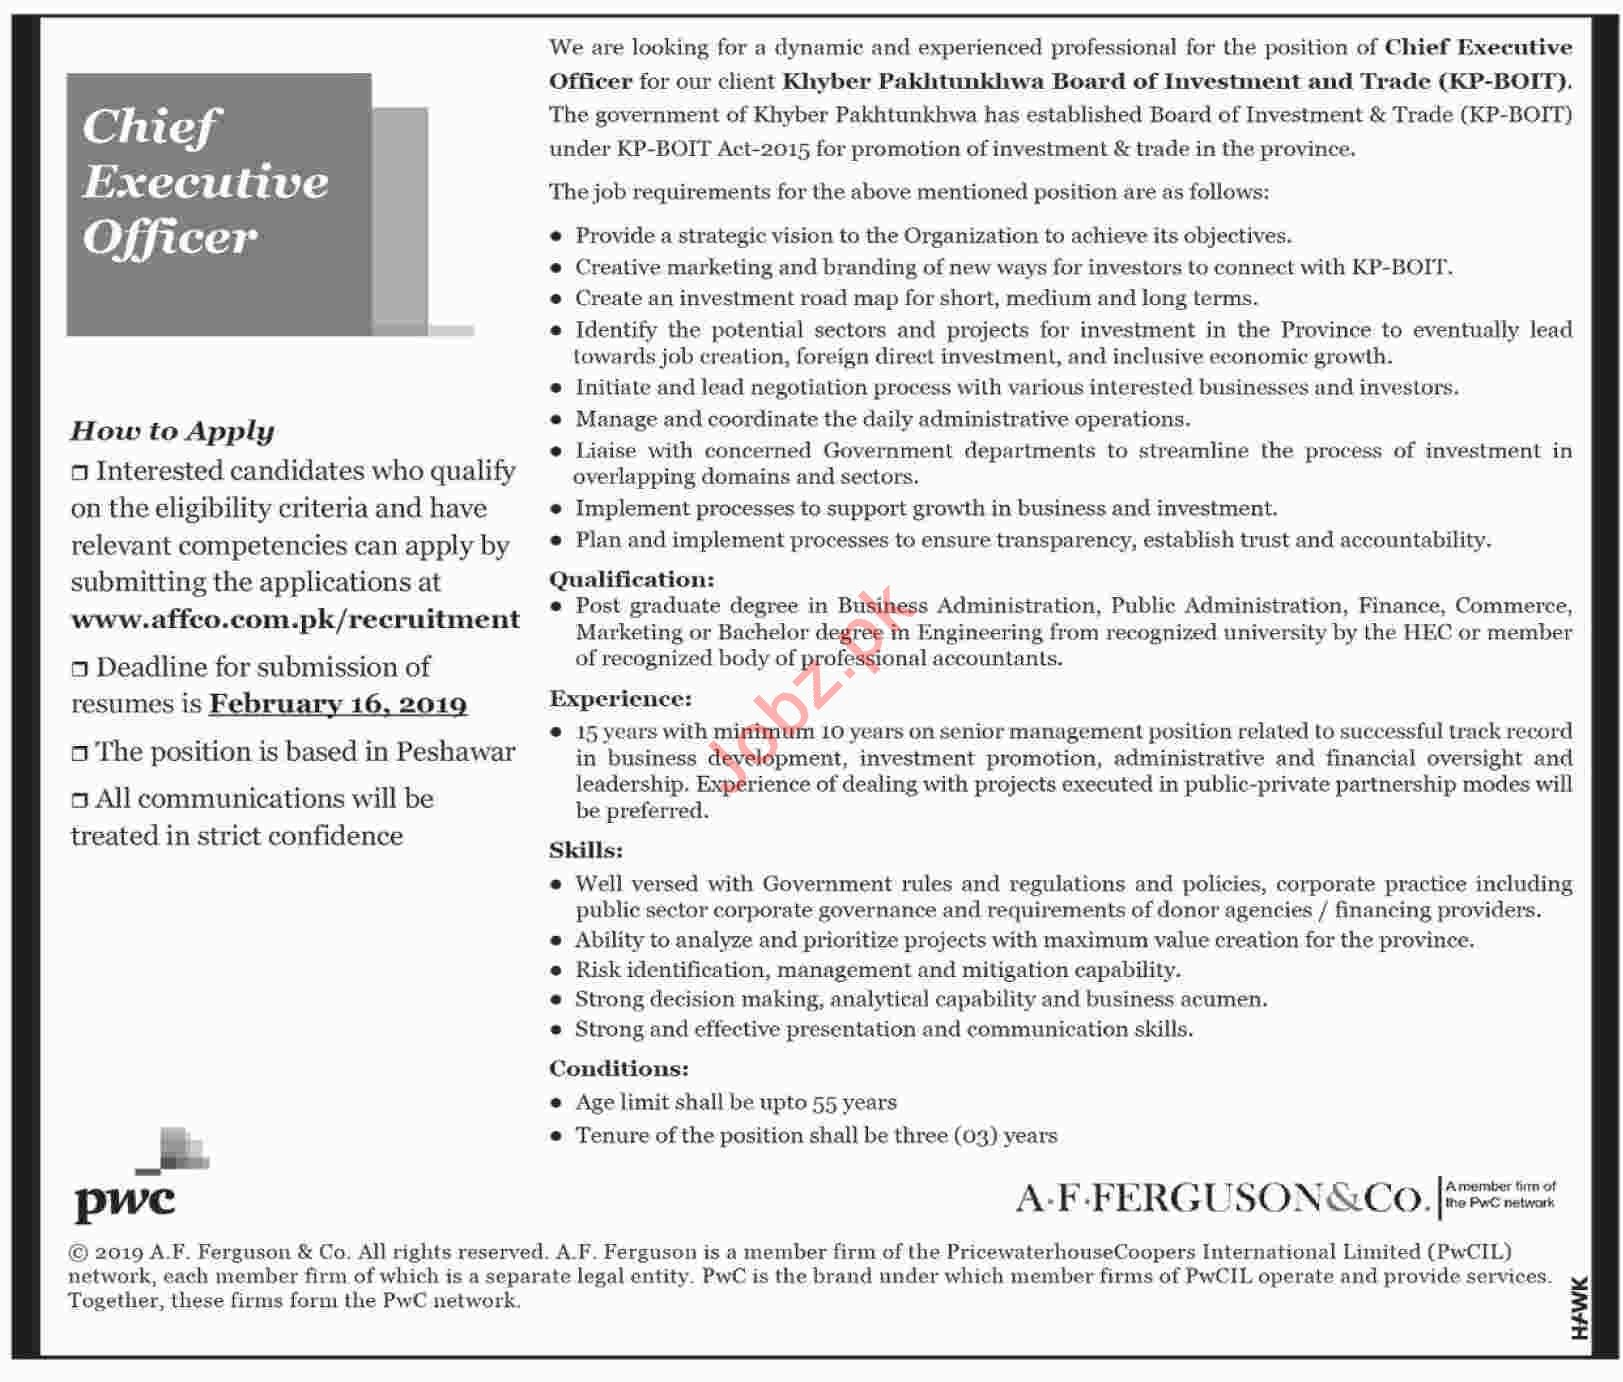 Chief Executive Officer Jobs at KPBOIT